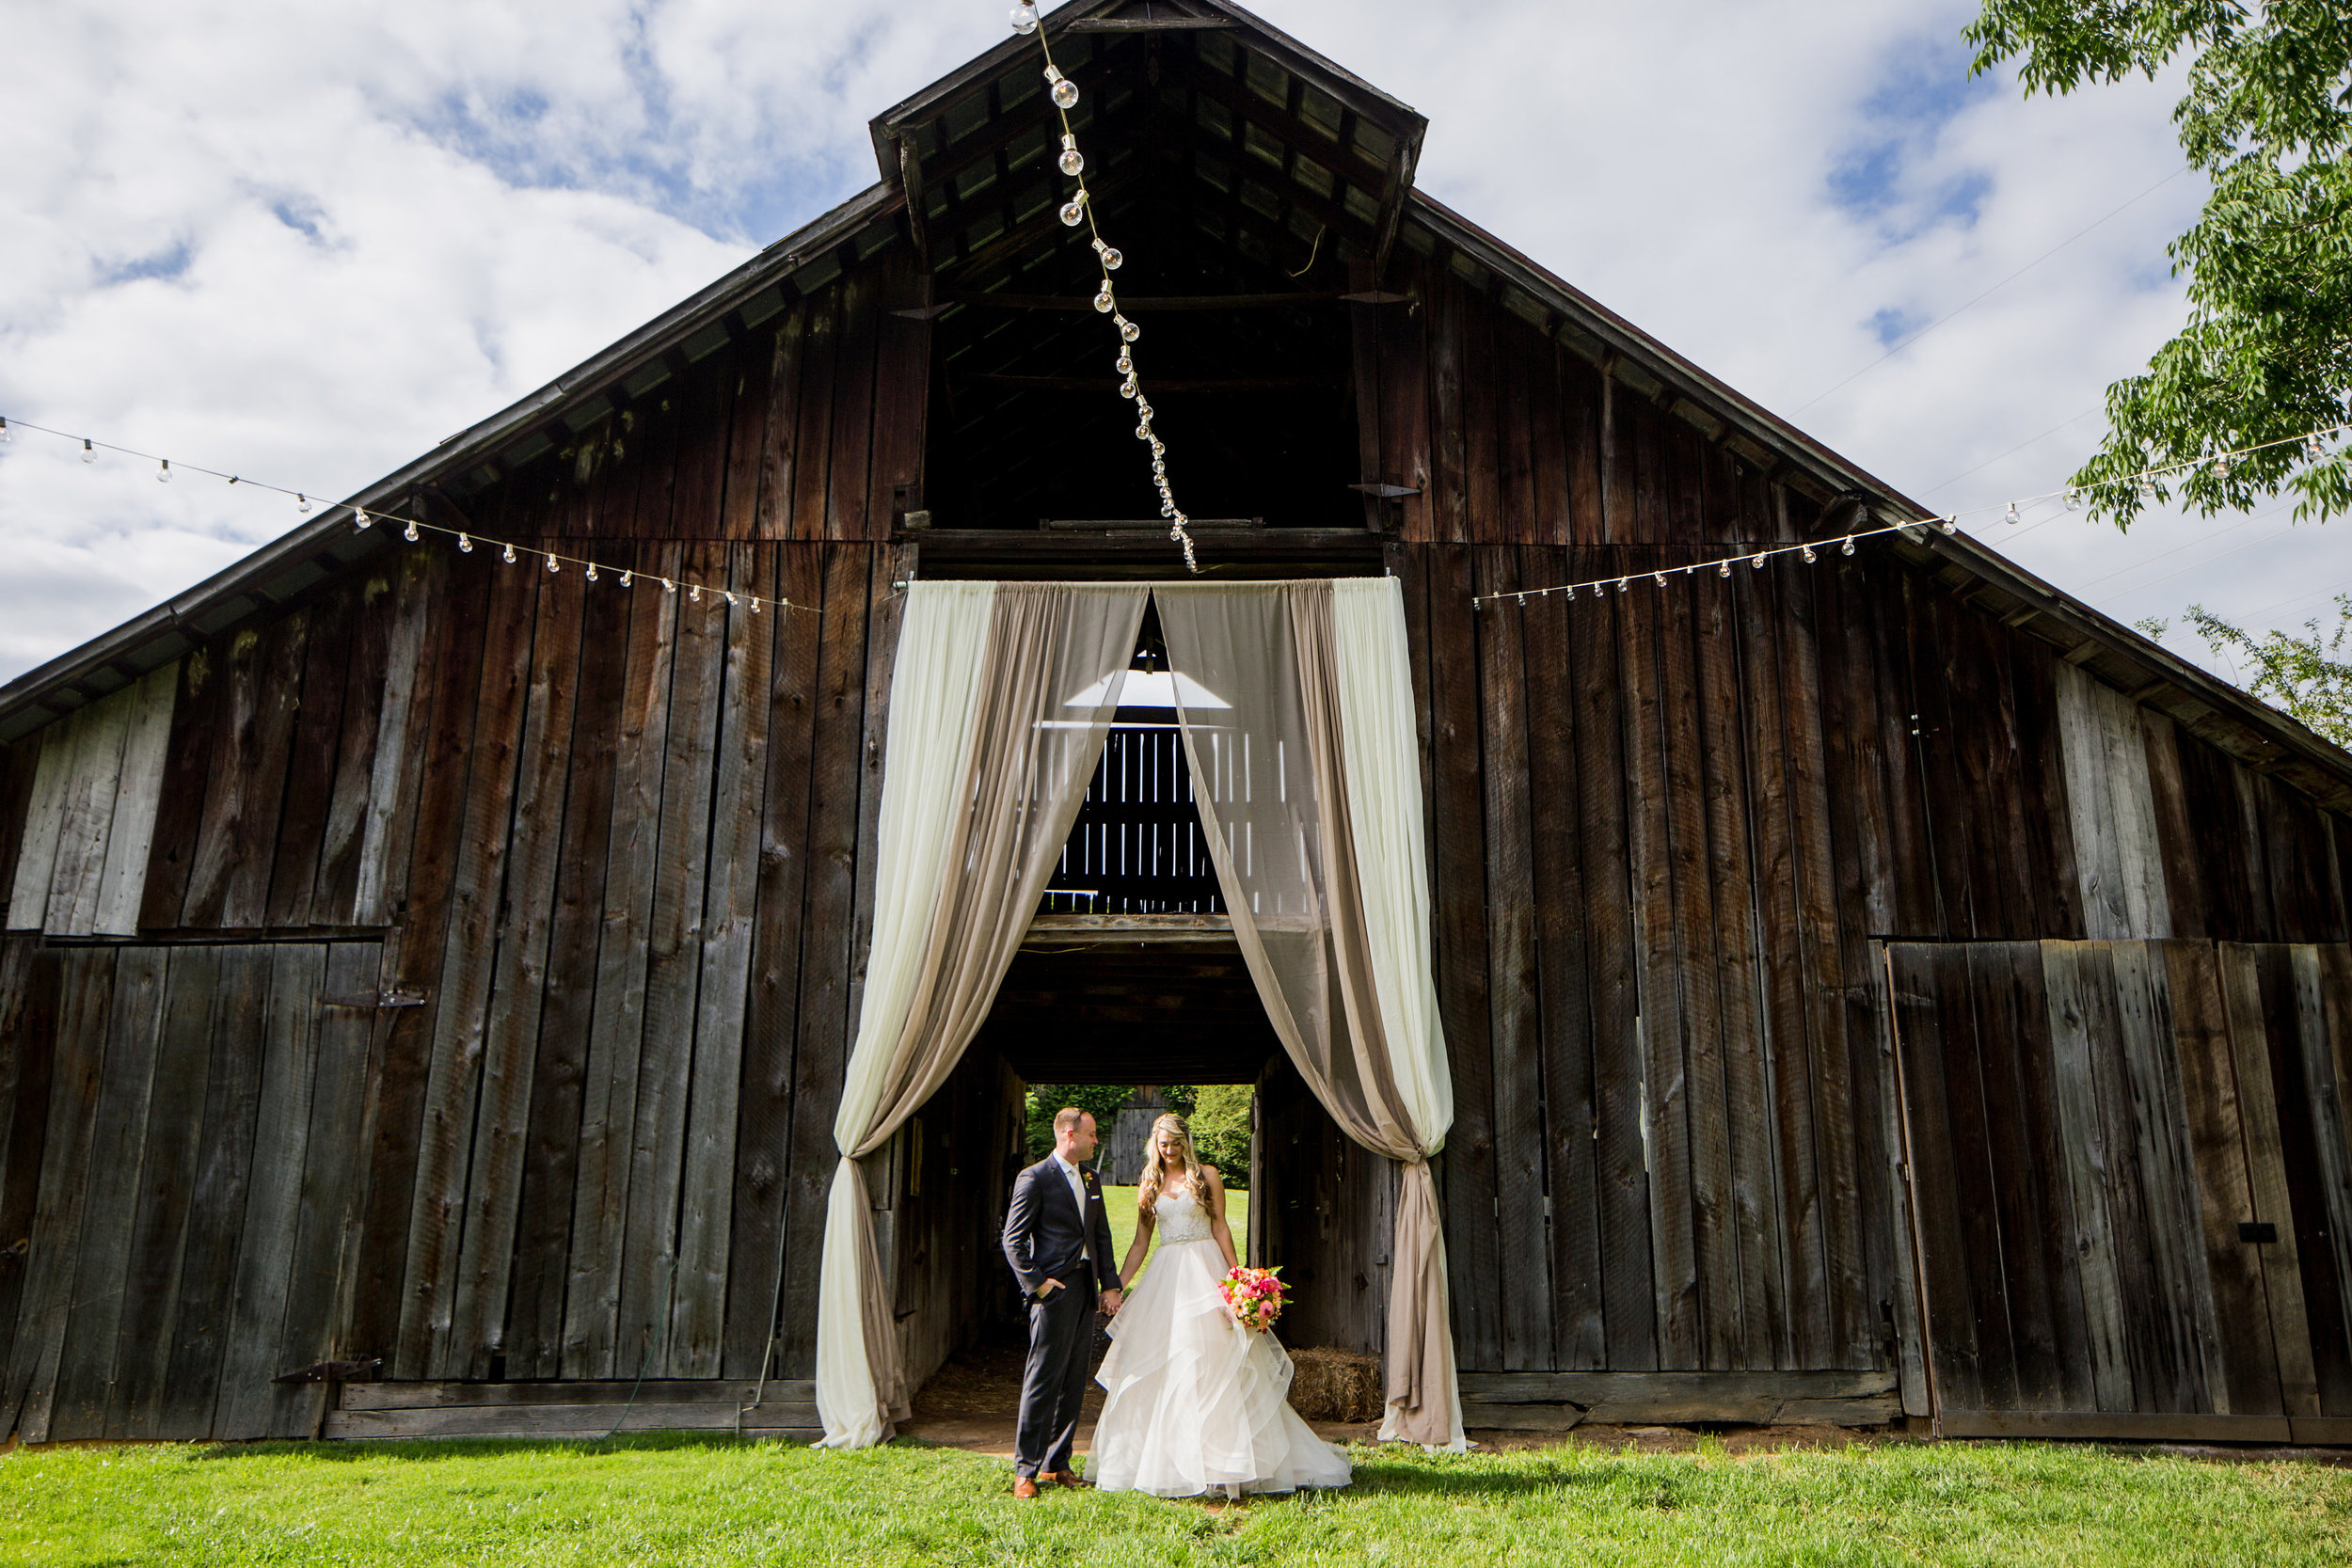 Nashville Wedding Photographers Drakewood Farm-282.jpg